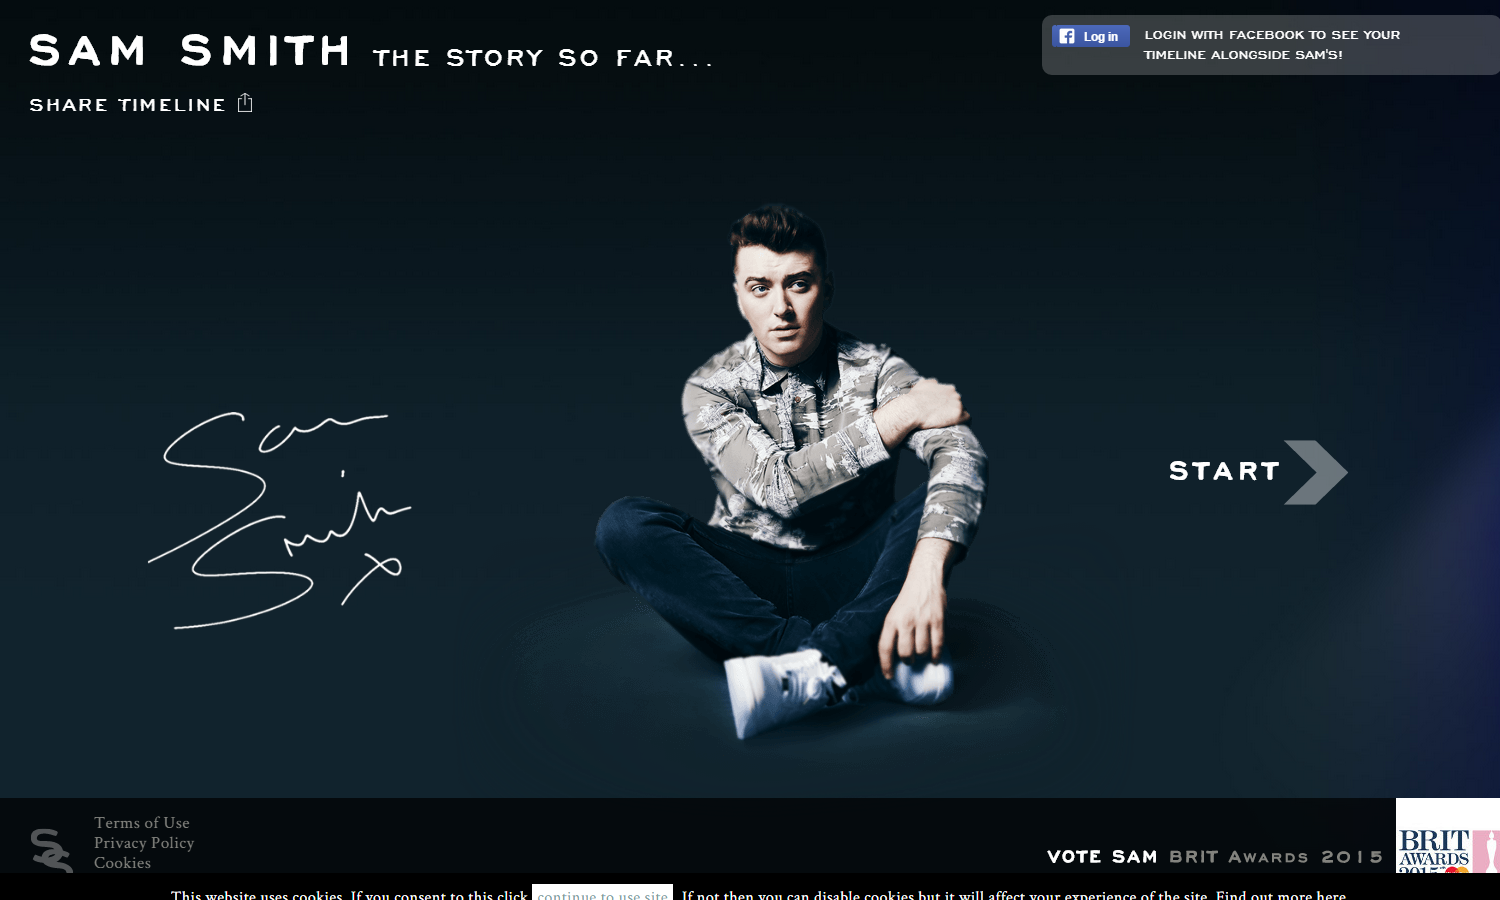 Sam Smith   The story so far...